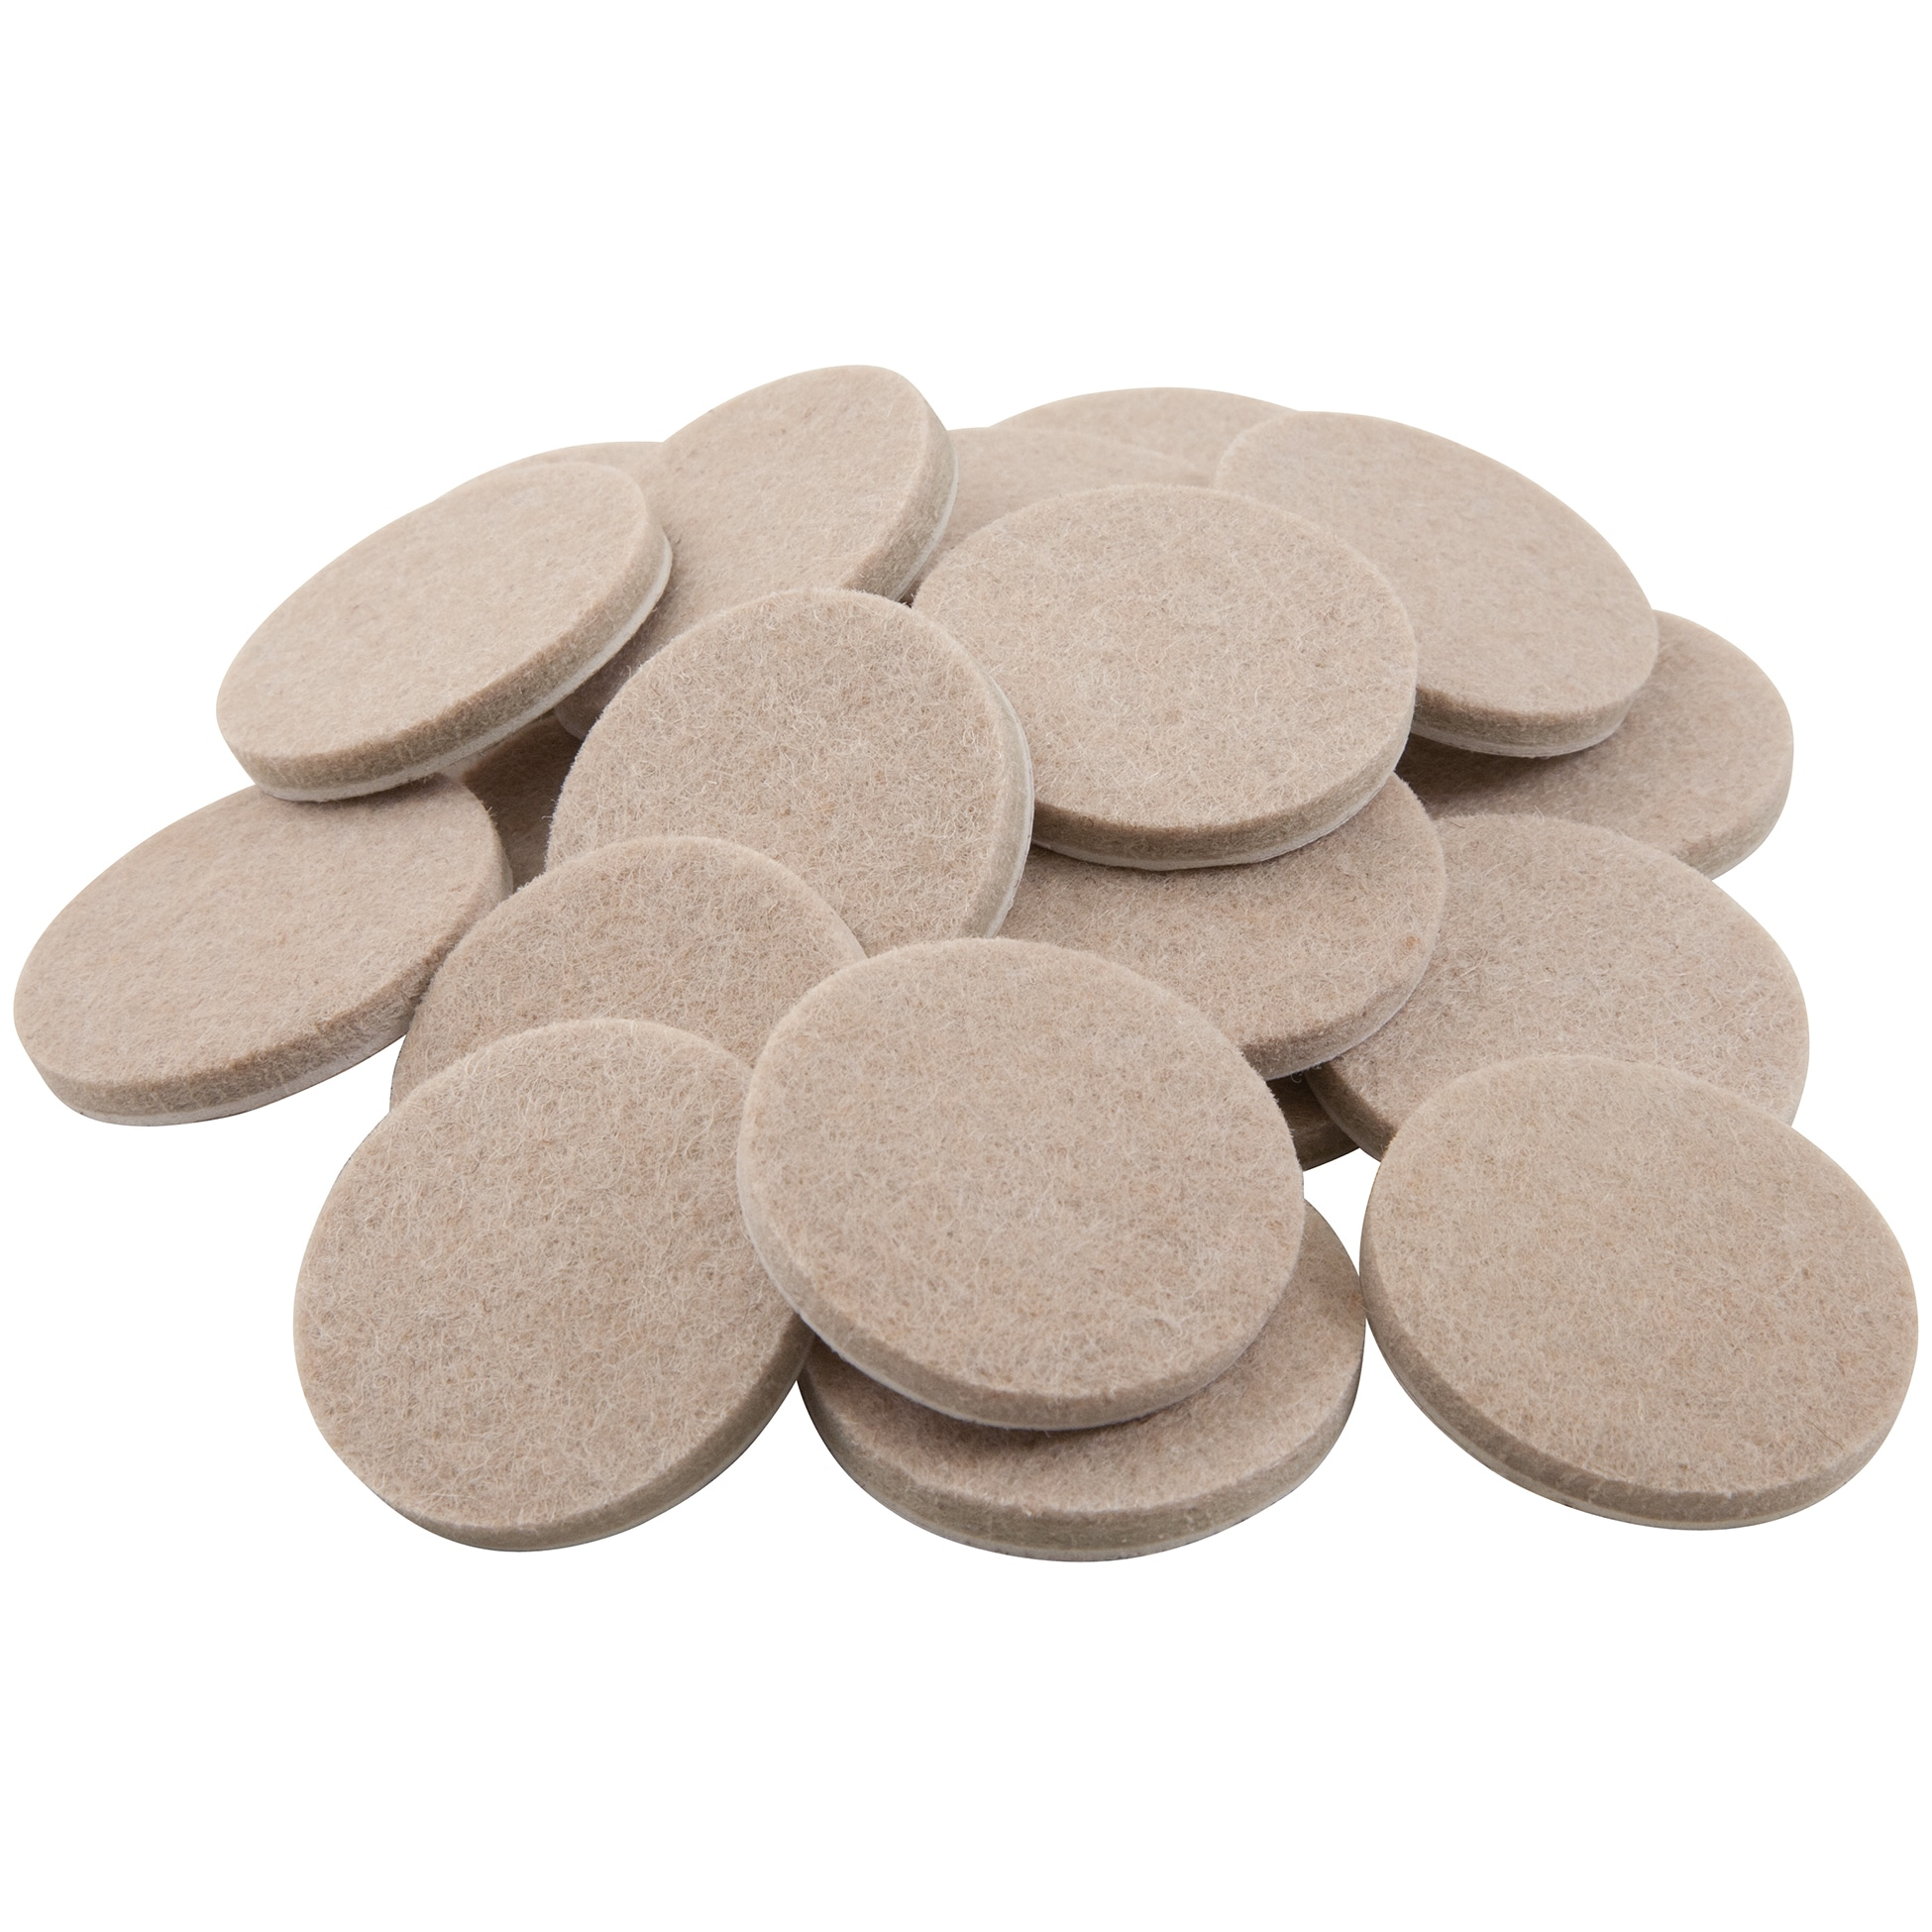 Waxman Consumer Group 4718395N 1-1/2 Oatmeal Round Self-Stick Felt Pads 24-ct (Hardware)